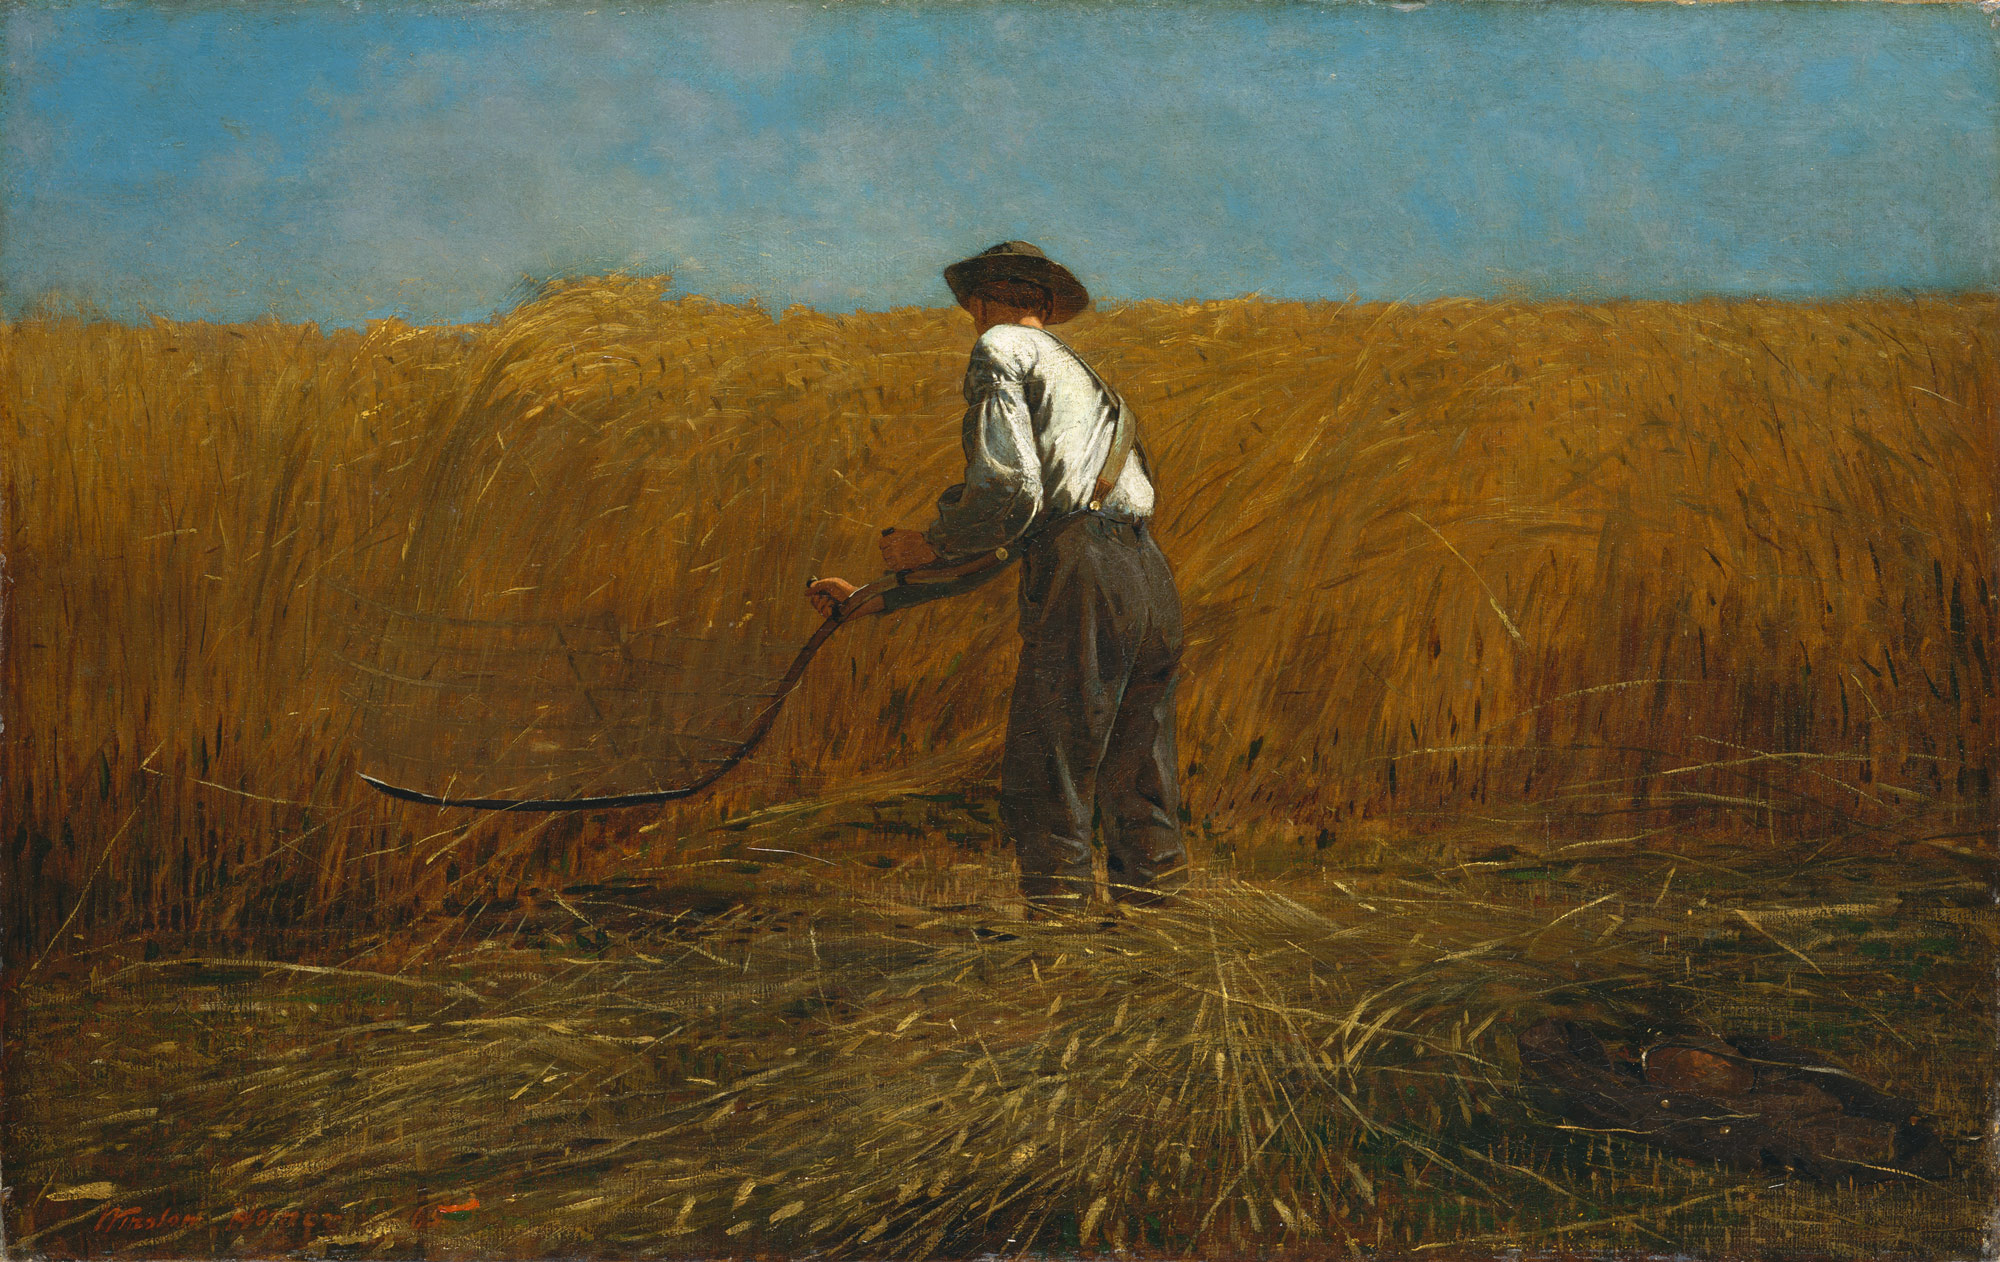 Winslow Homer - The Veteran In A New Field (1865)